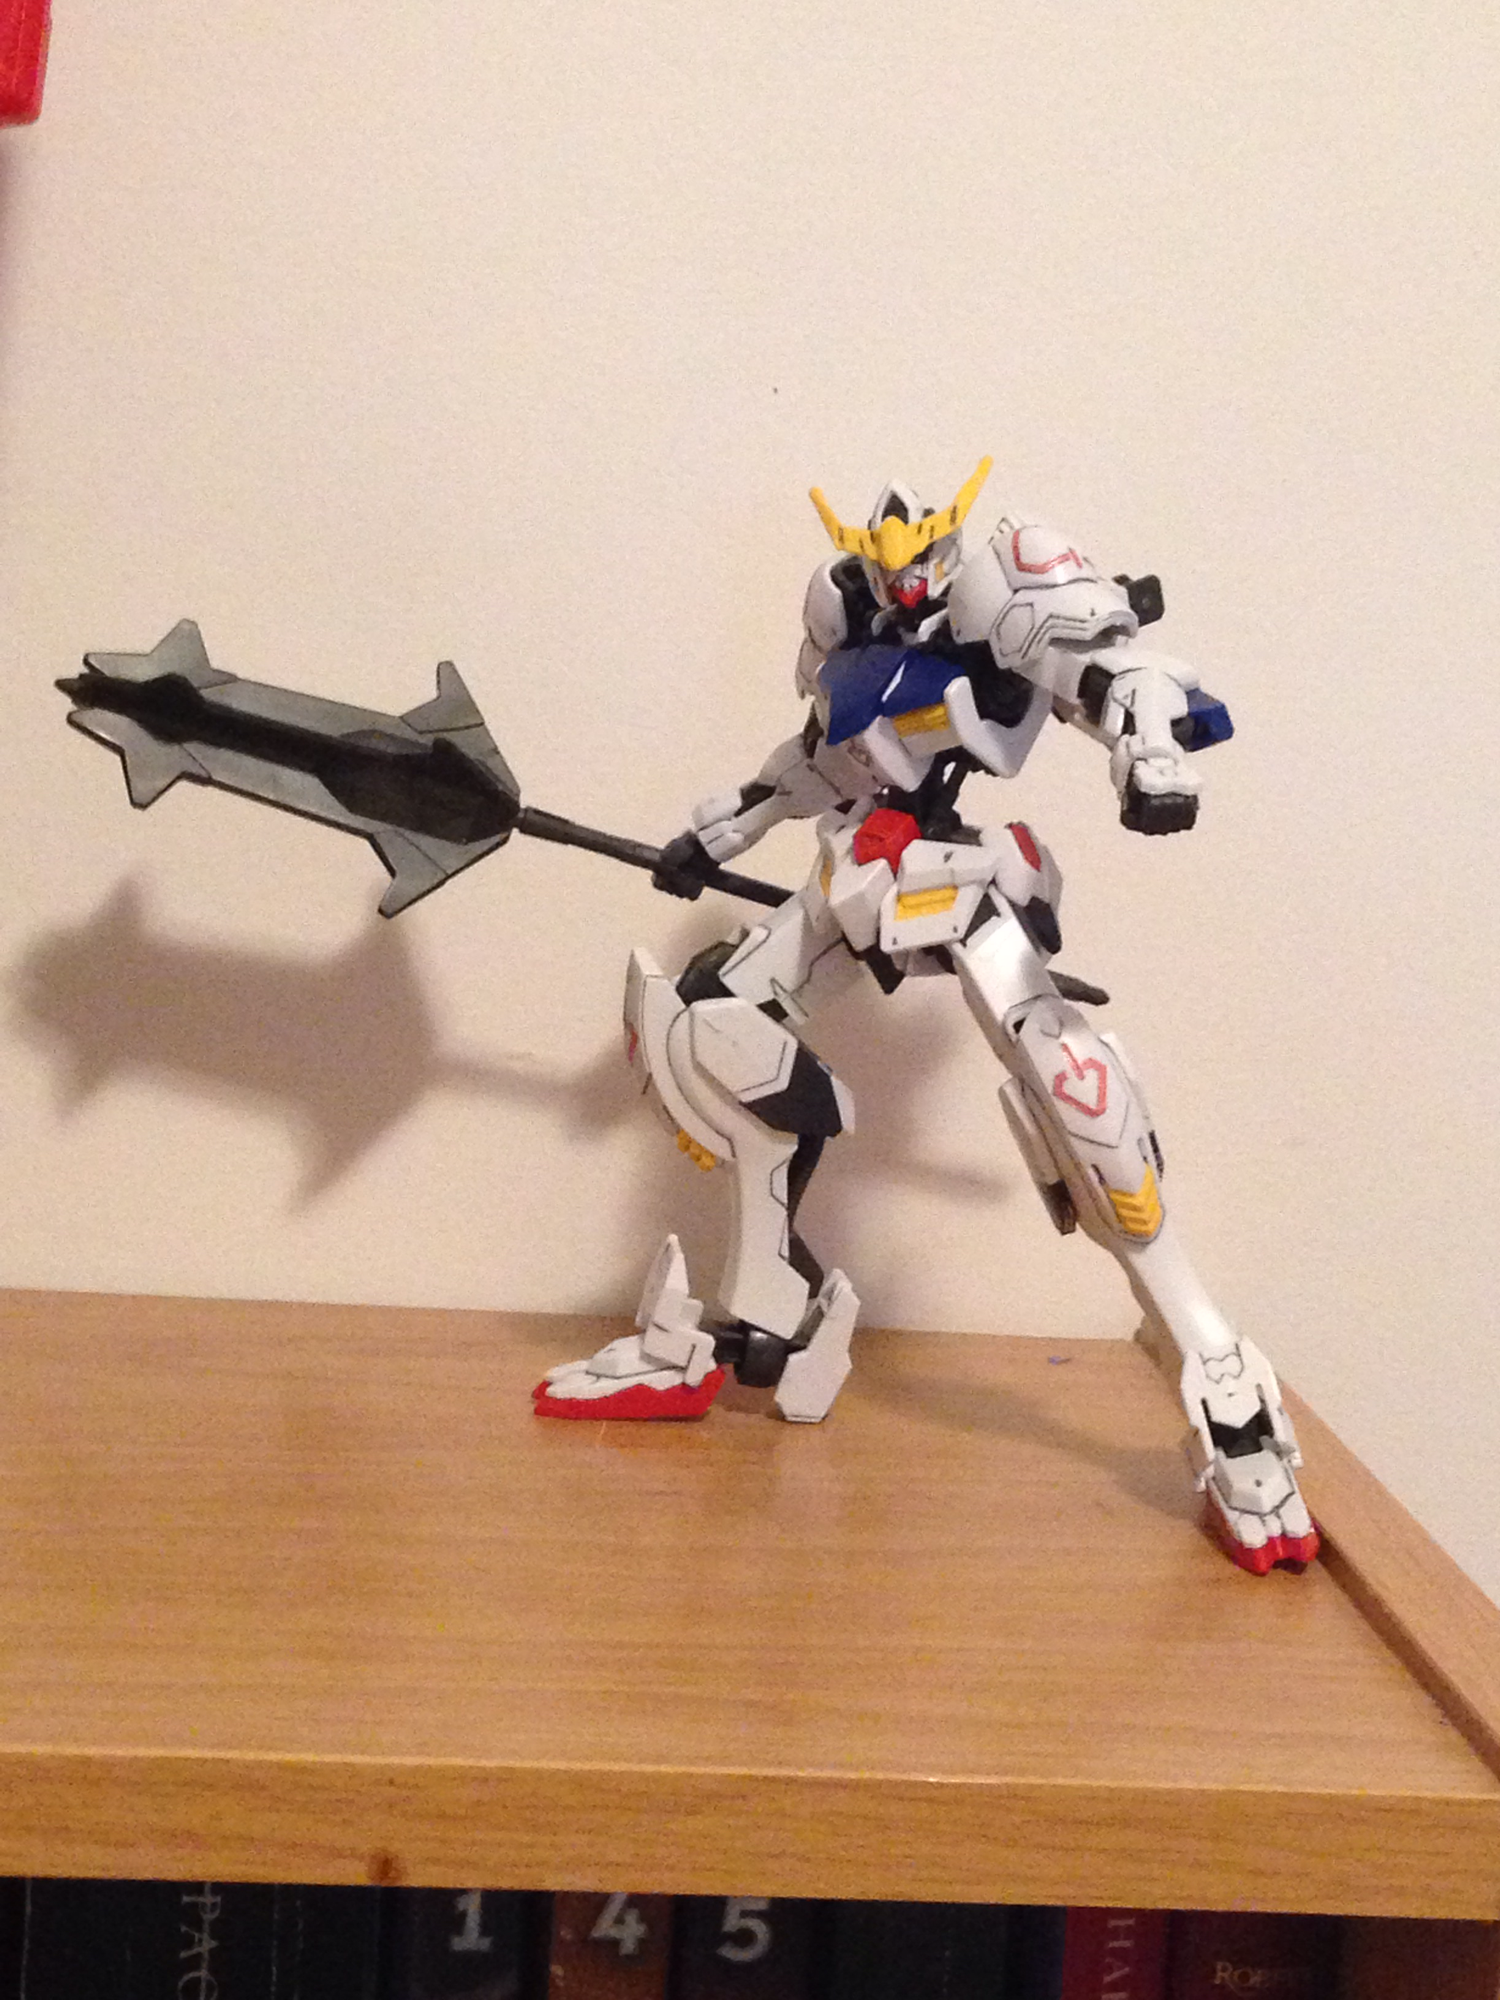 First Gunpla build!